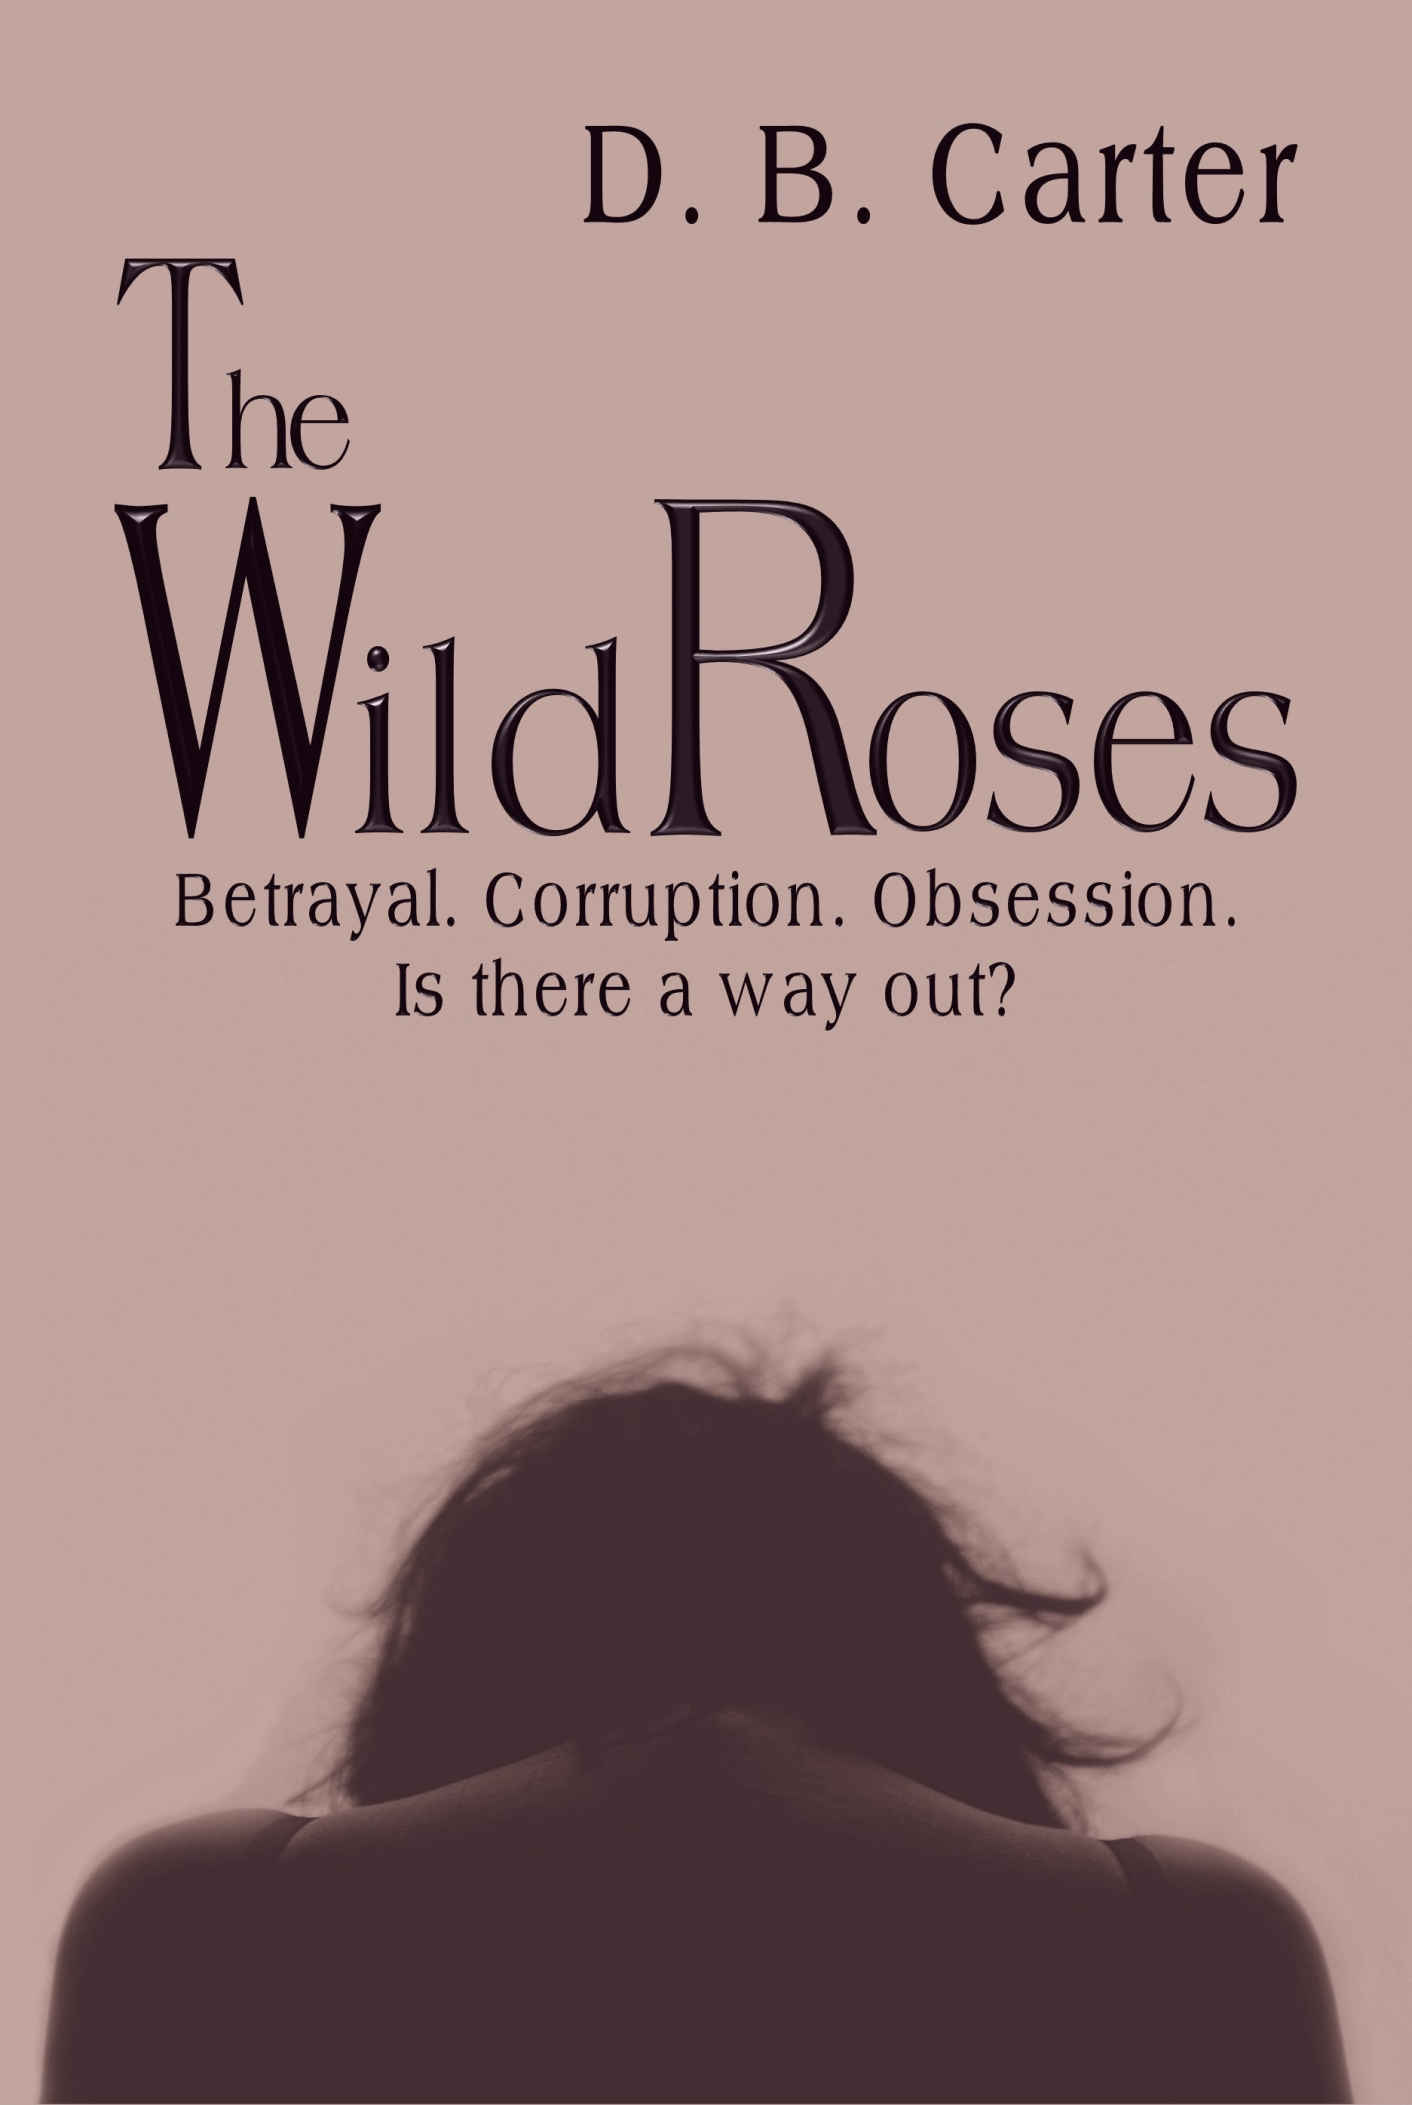 Release Announcement! The Wild Roses: Betrayal. Corruption. Obsession. Is there a way out? by D.B. Carter